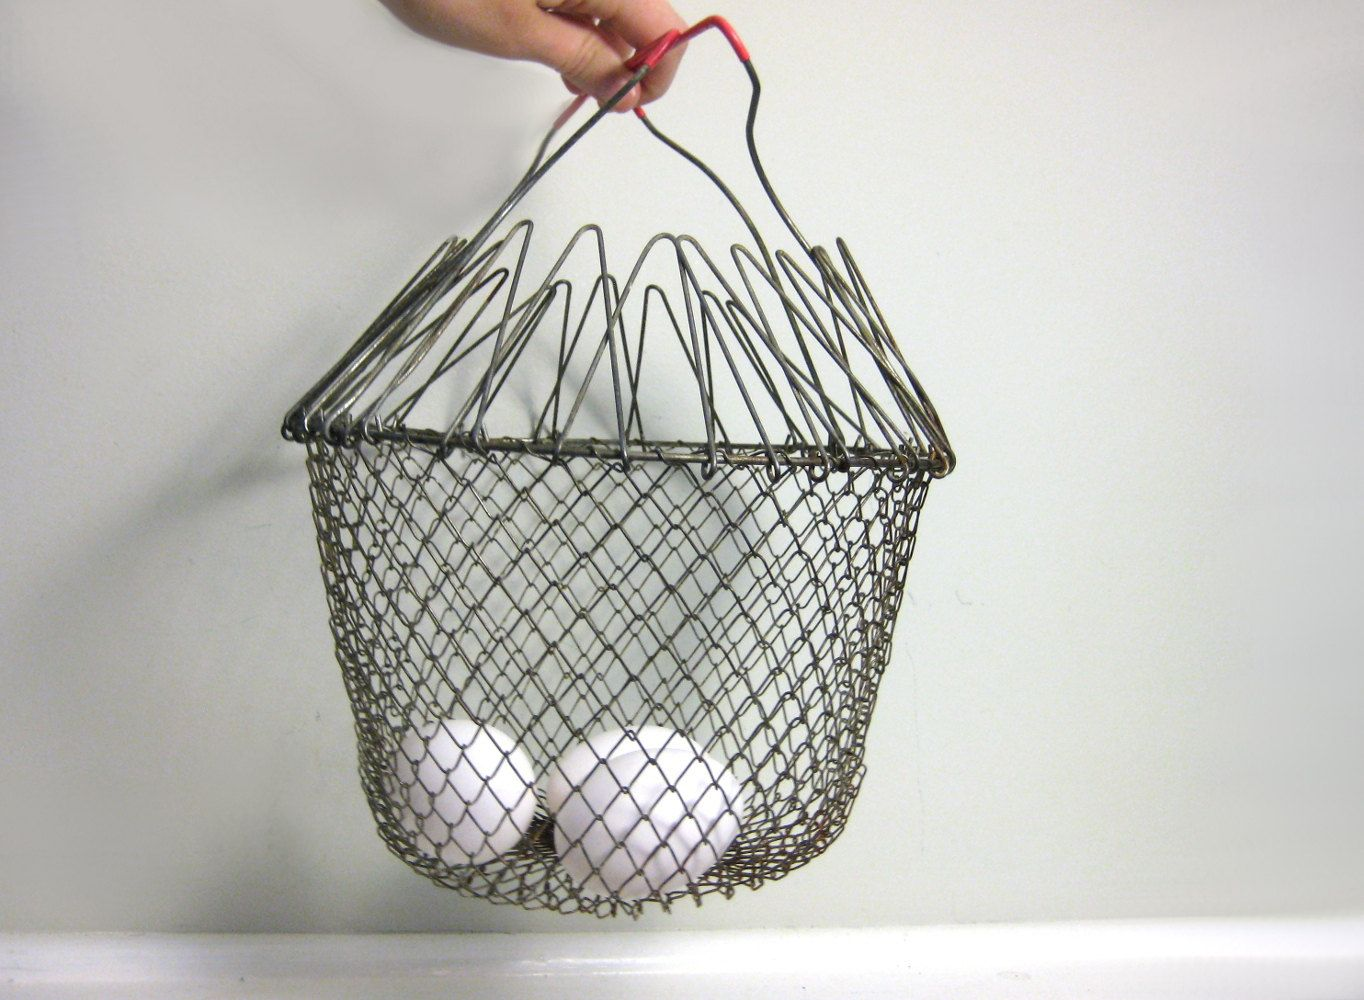 Vintage Wire Egg Basket Collapsible Metal Mesh Gathering Basket Farmhouse Rustic Cottage Chic Hanging Plante Wire Egg Basket Vintage Hanging Flower Baskets